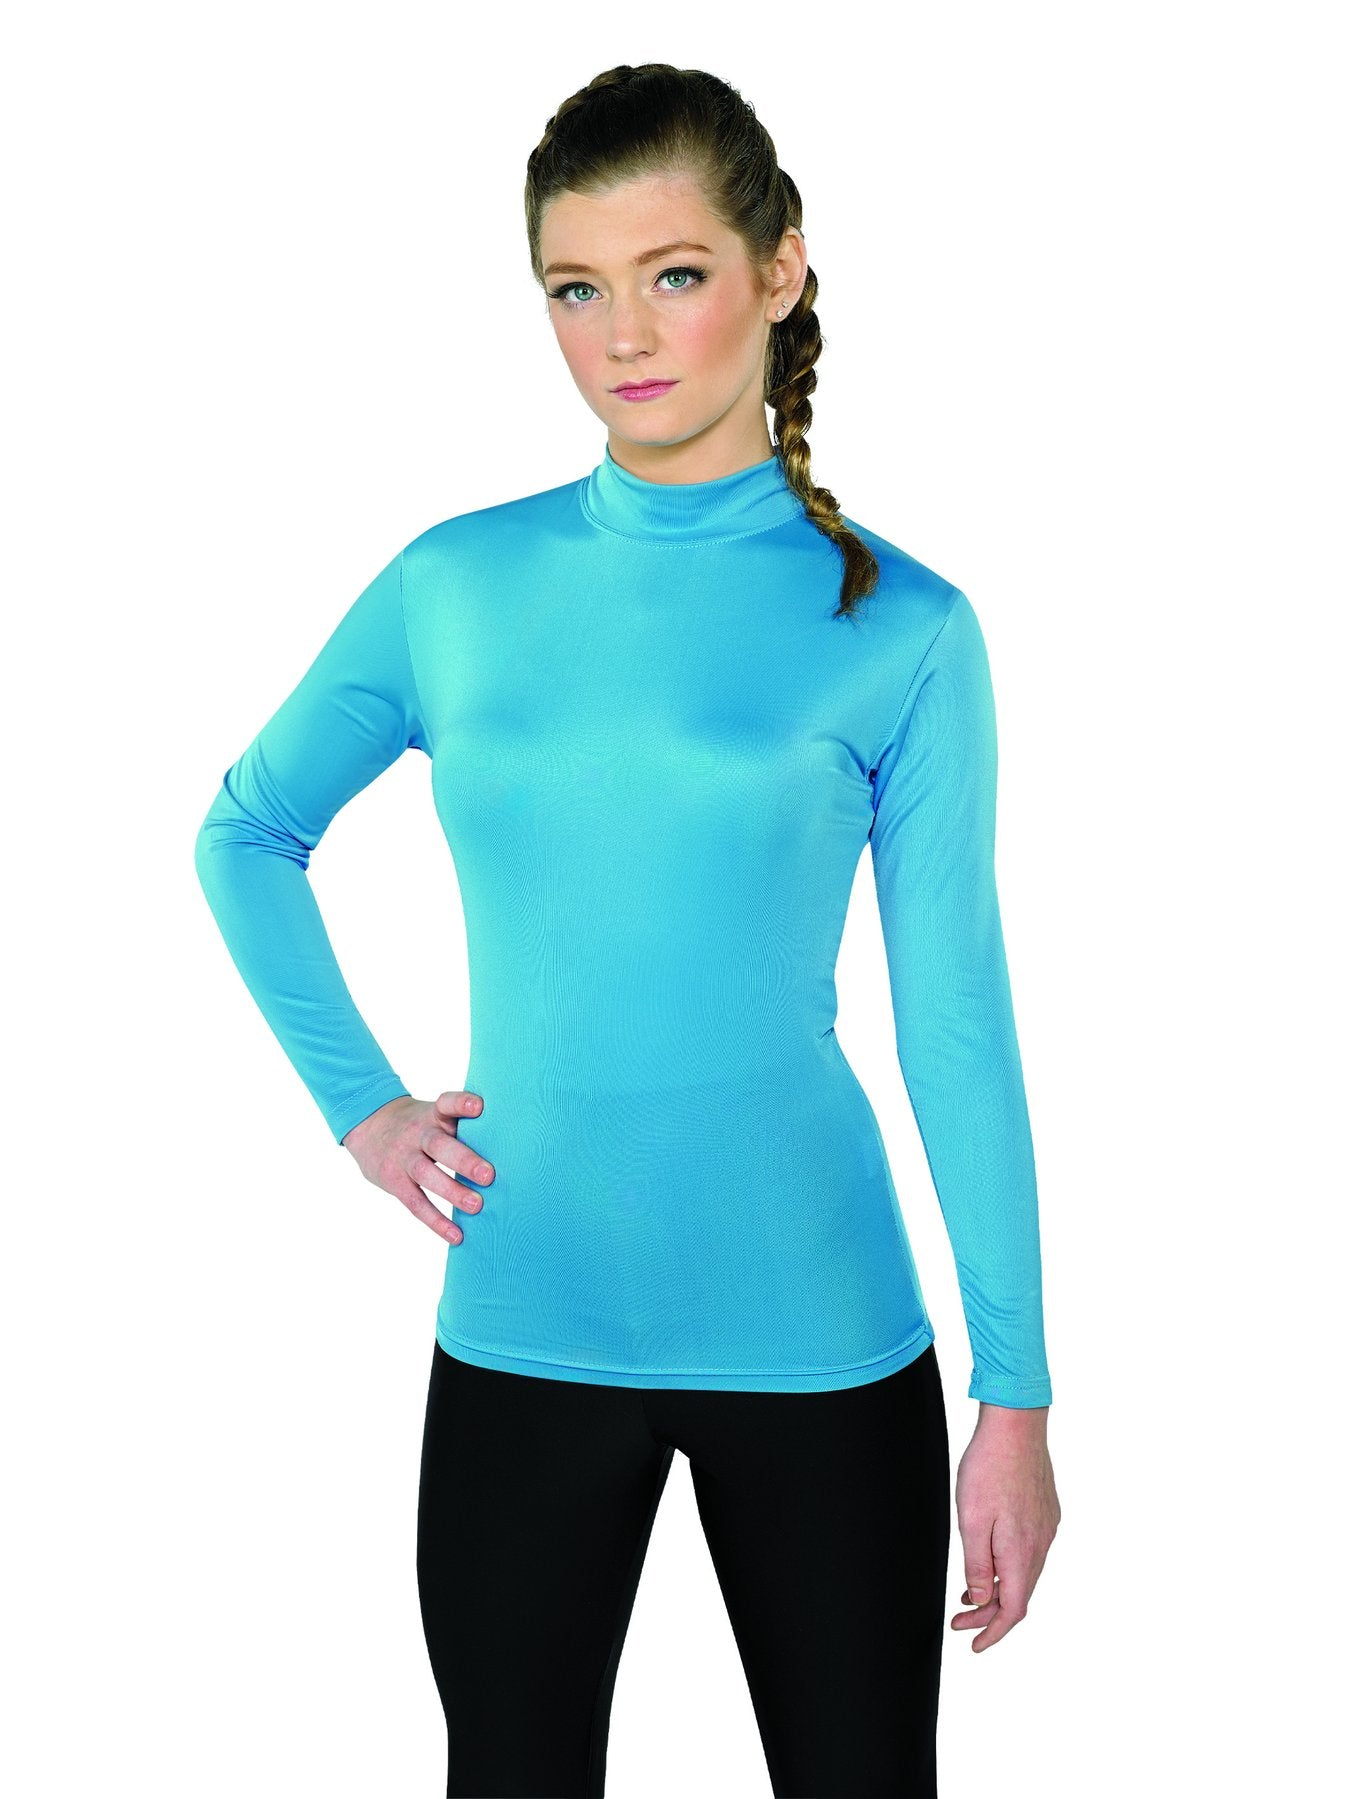 Corelements Long Sleeve Compression Top